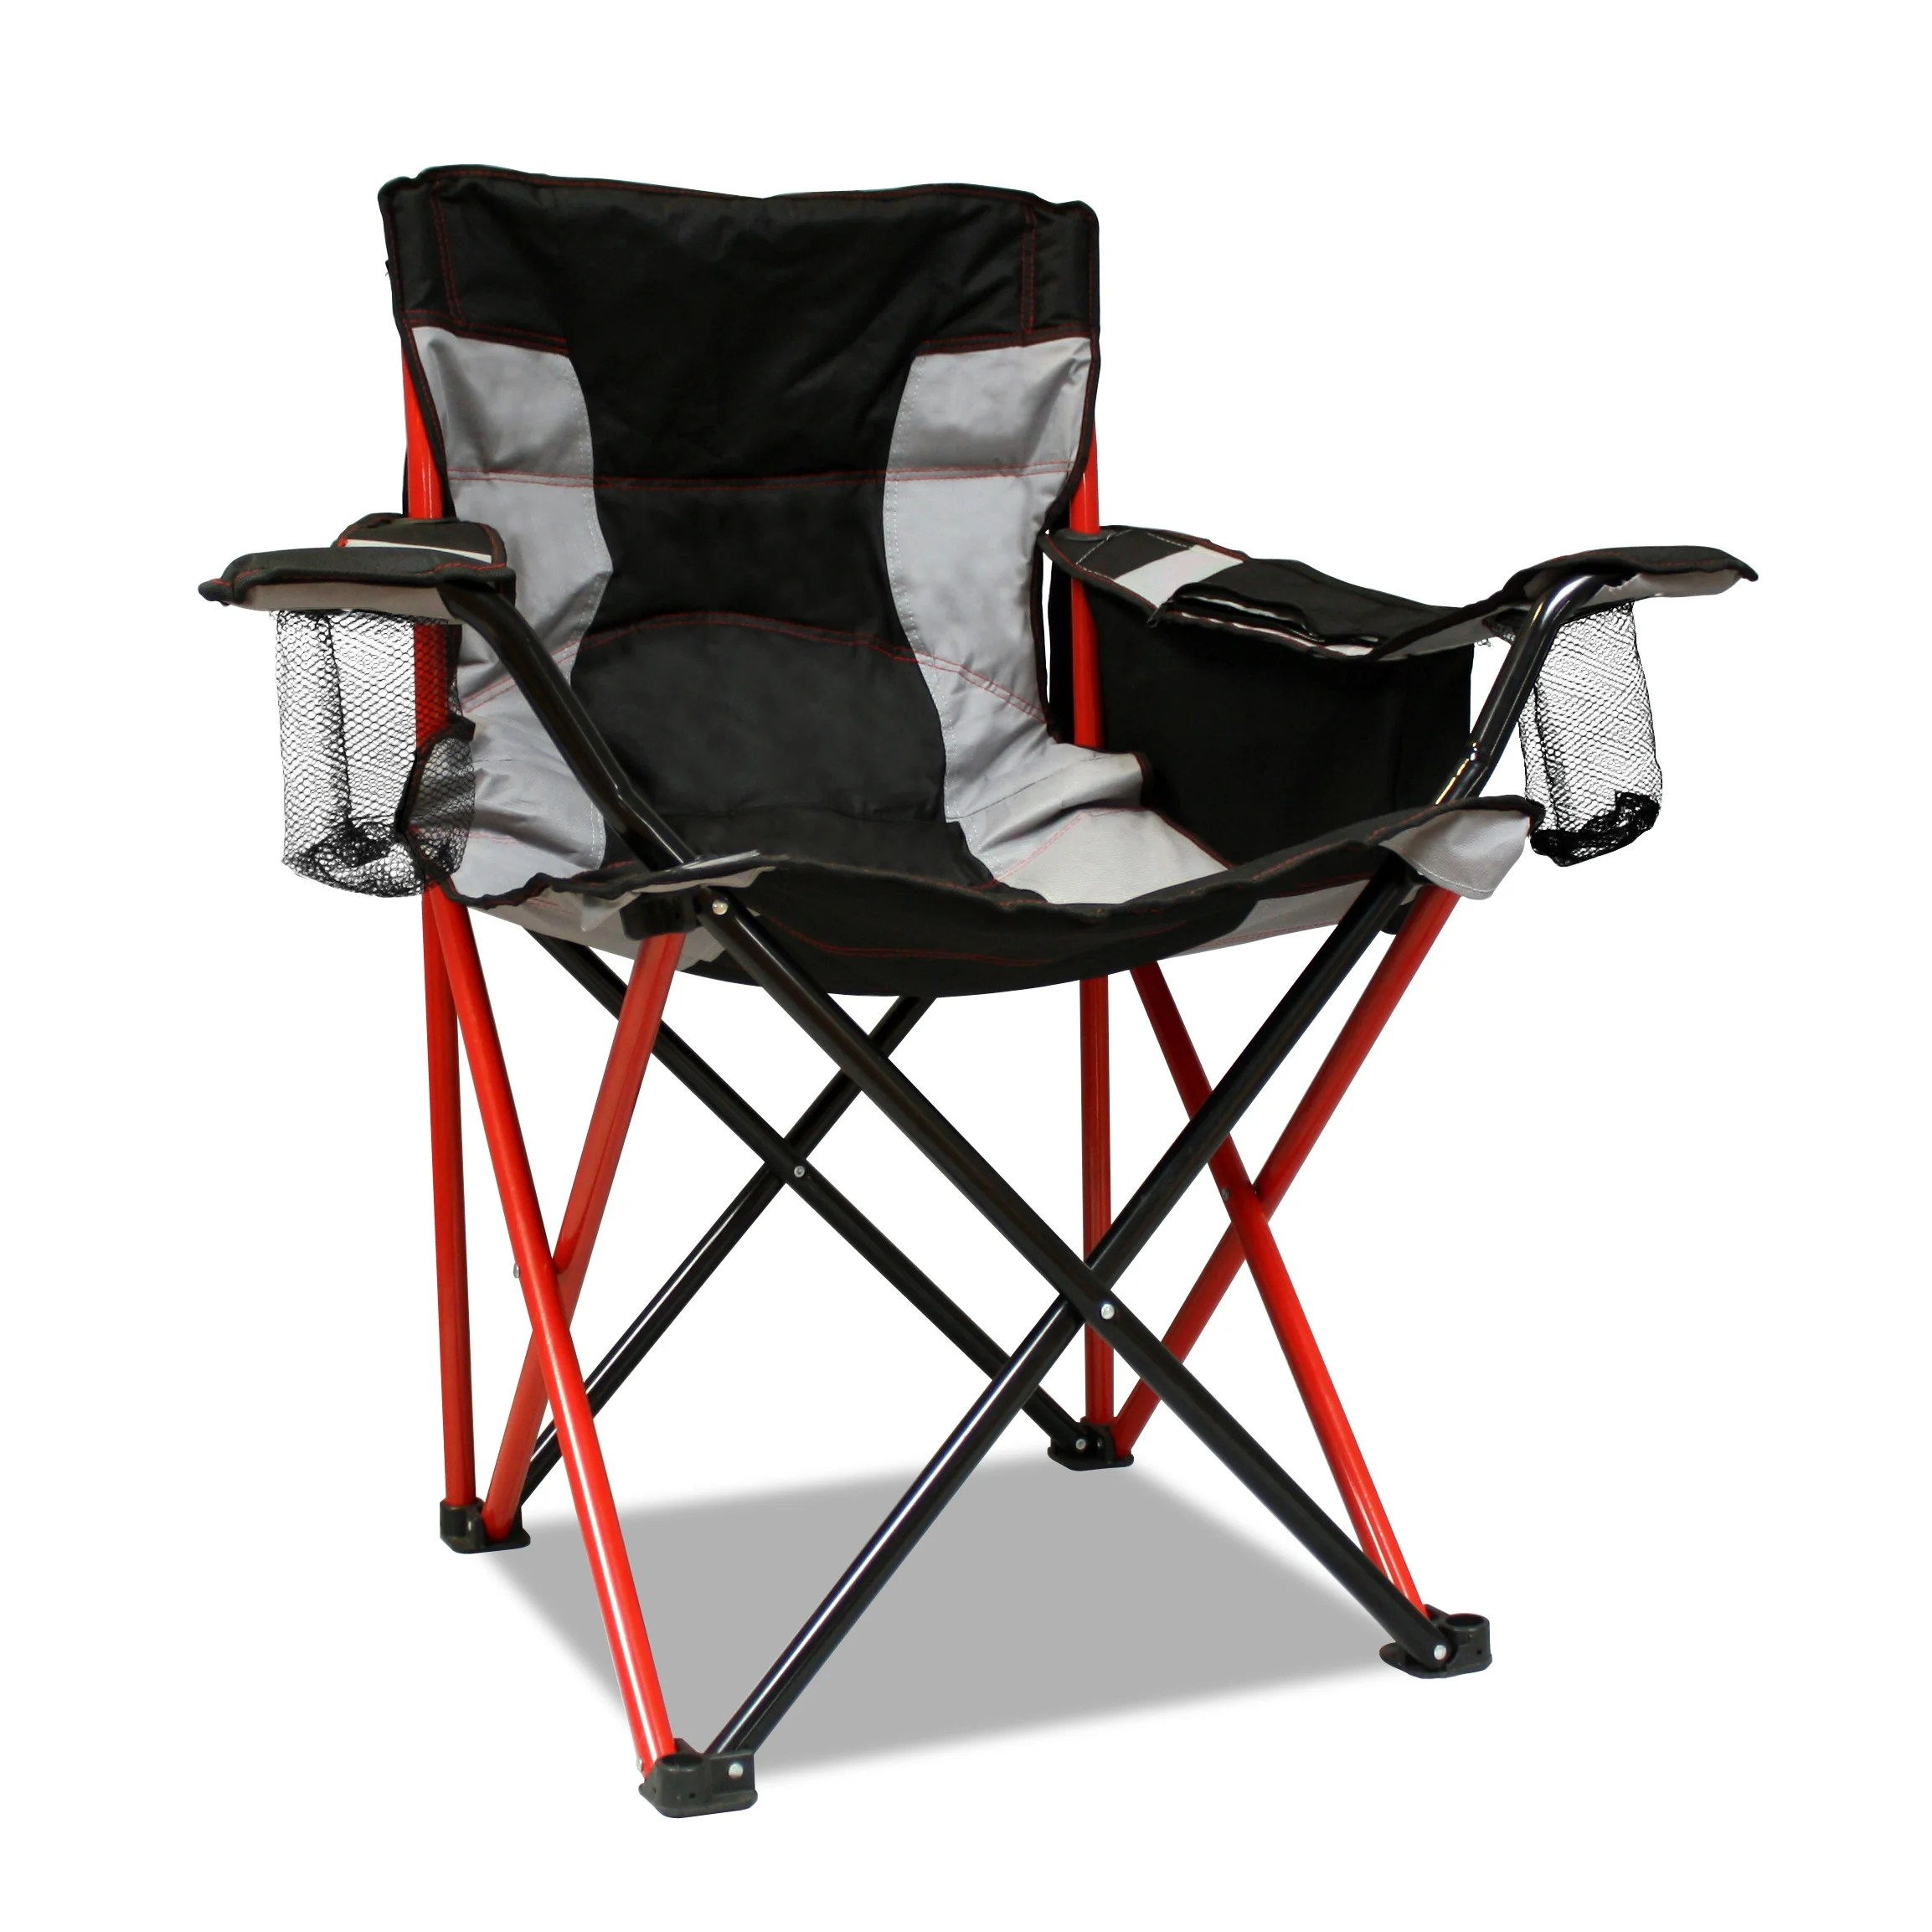 Camping Chair With Canopy Caravan Sports Elite Quad Red Camping Chair